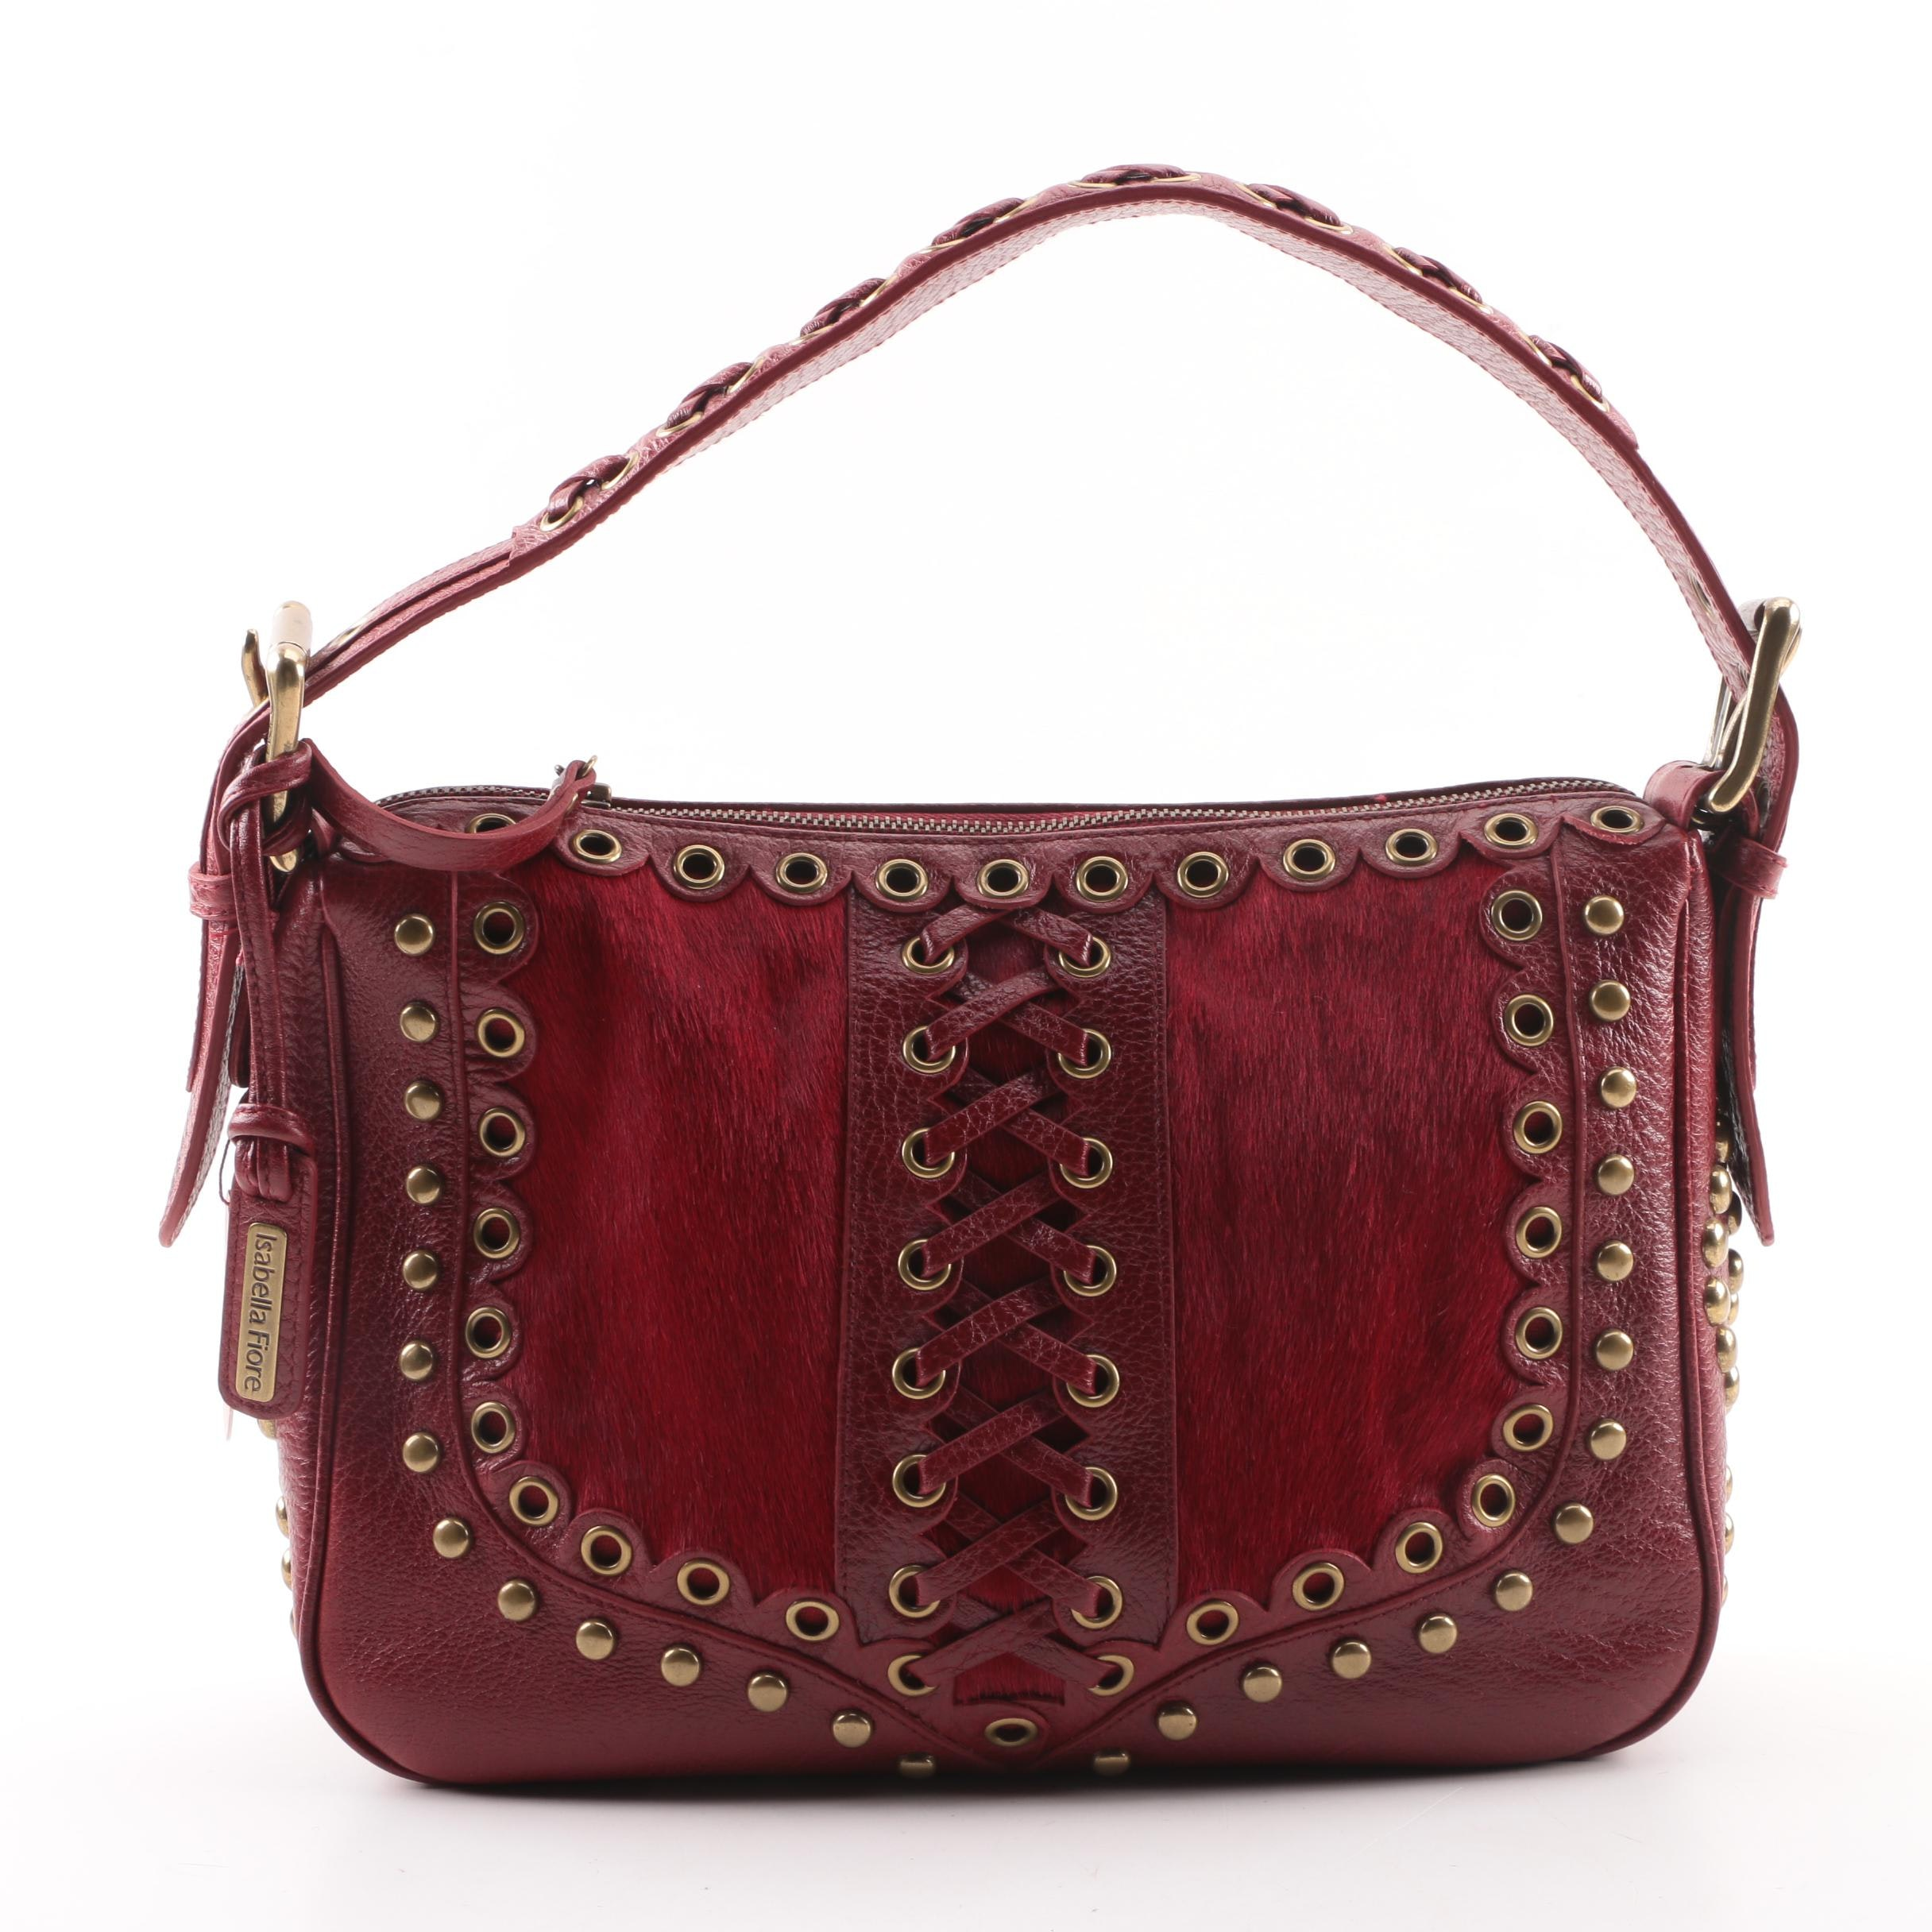 Isabella Fiore Maroon Leather and Pony Hair Shoulder Bag